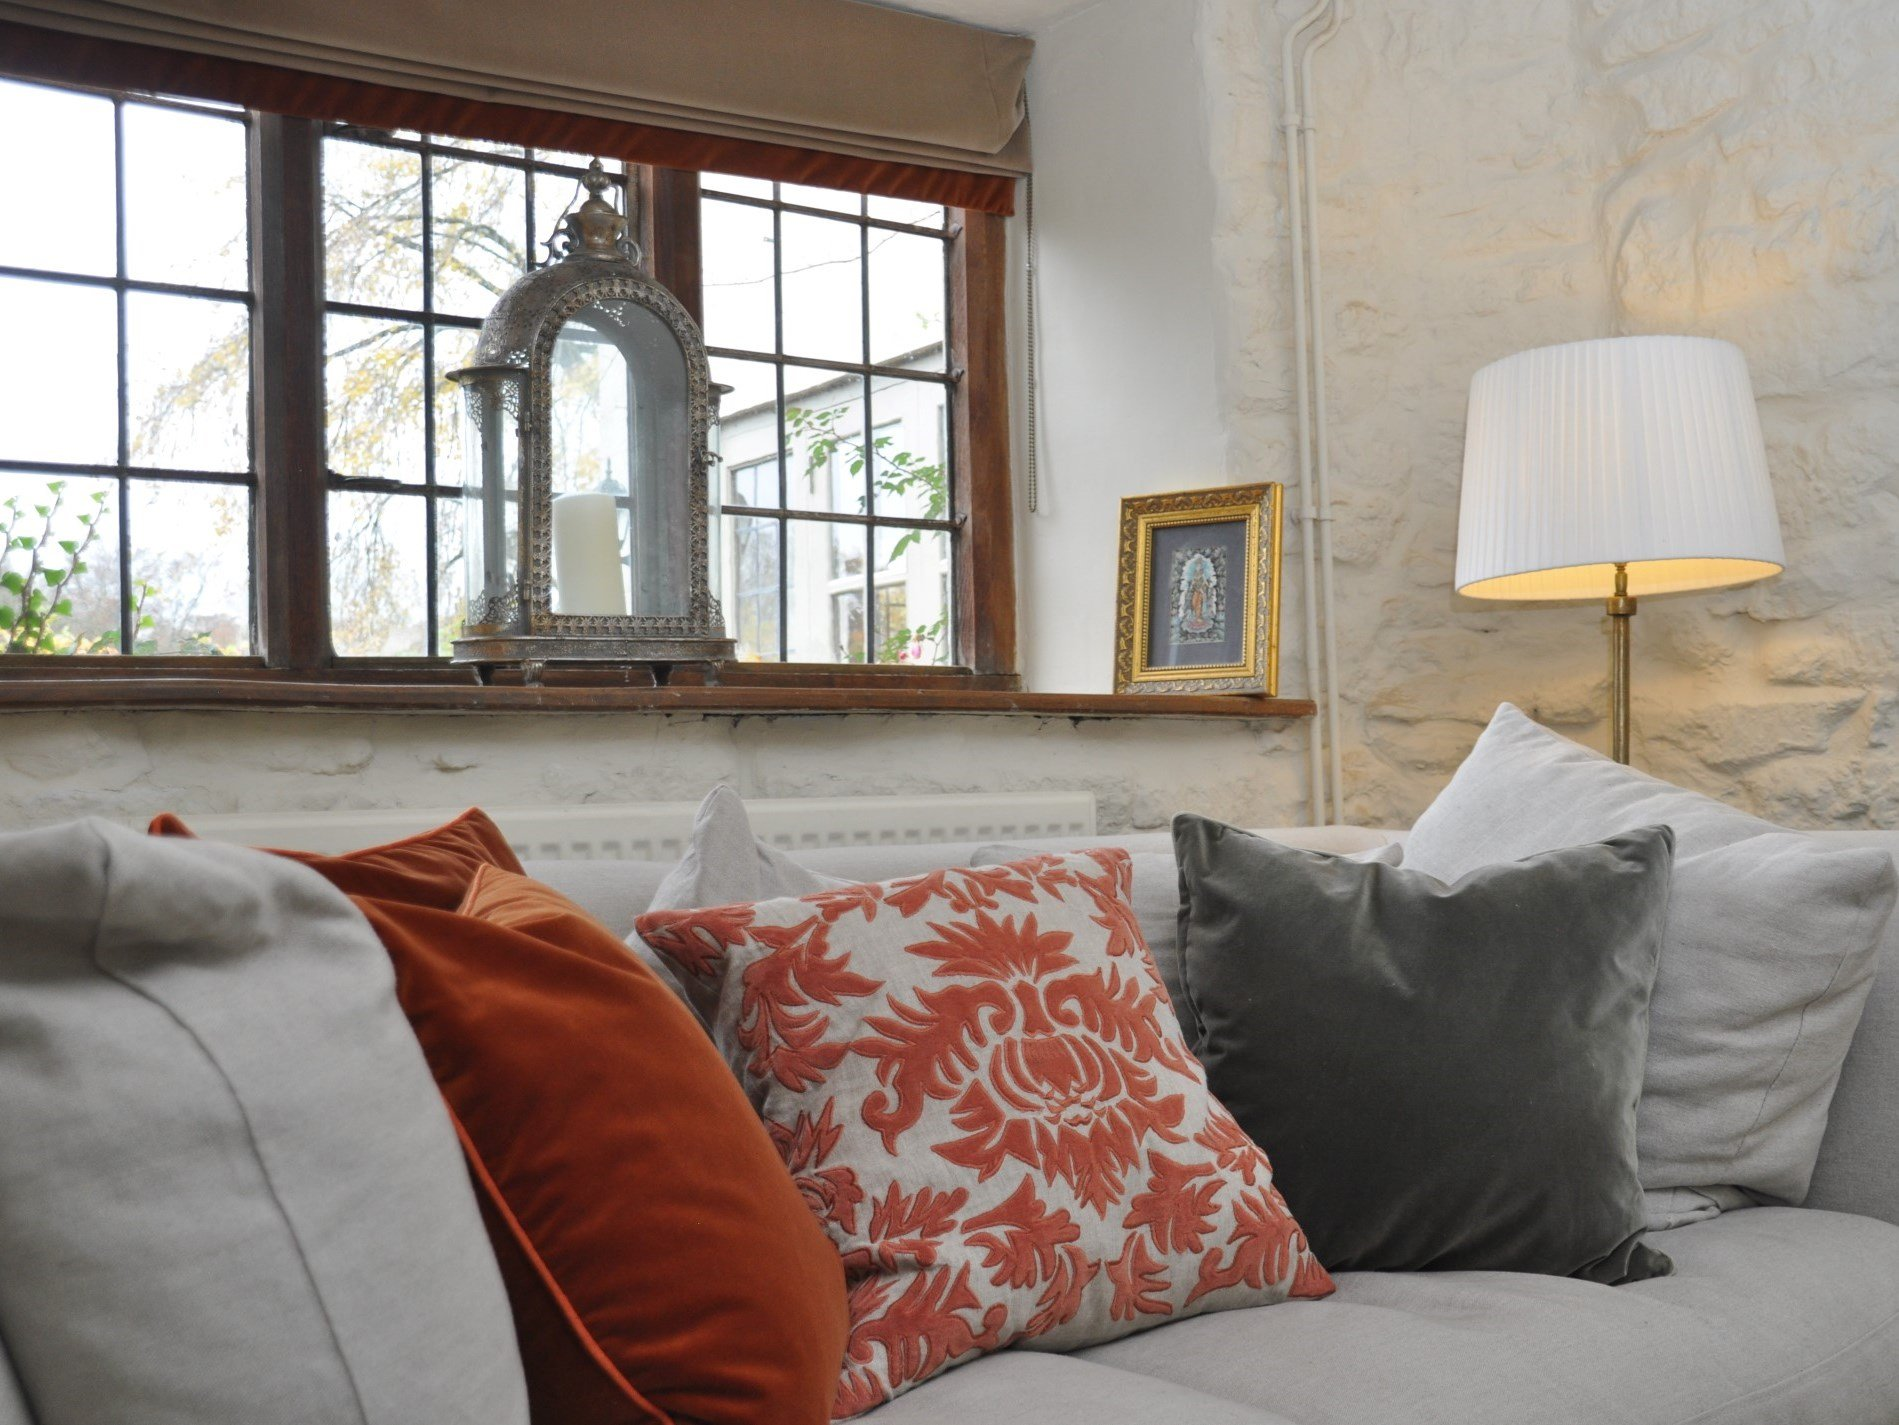 Curl up with a good book in the snug